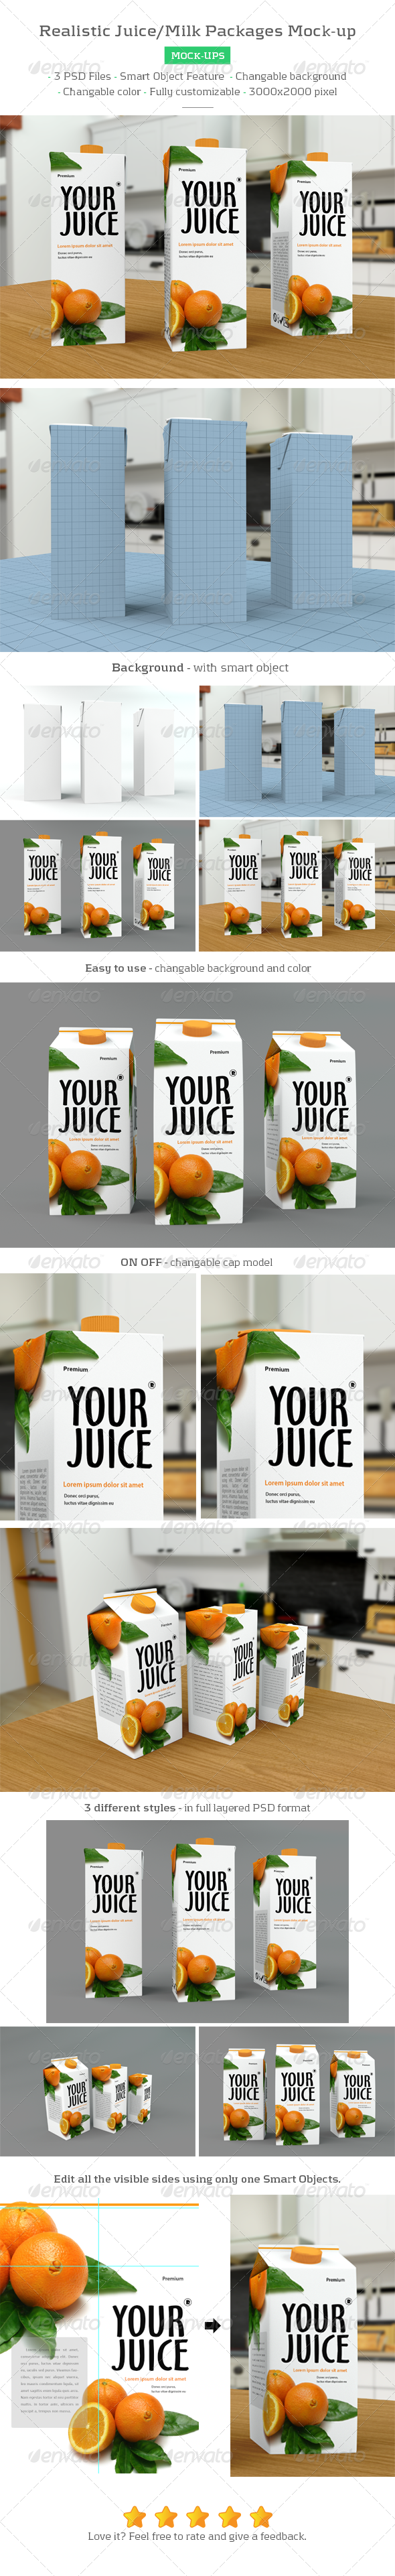 Realistic Milk/Juice Packages Mockup